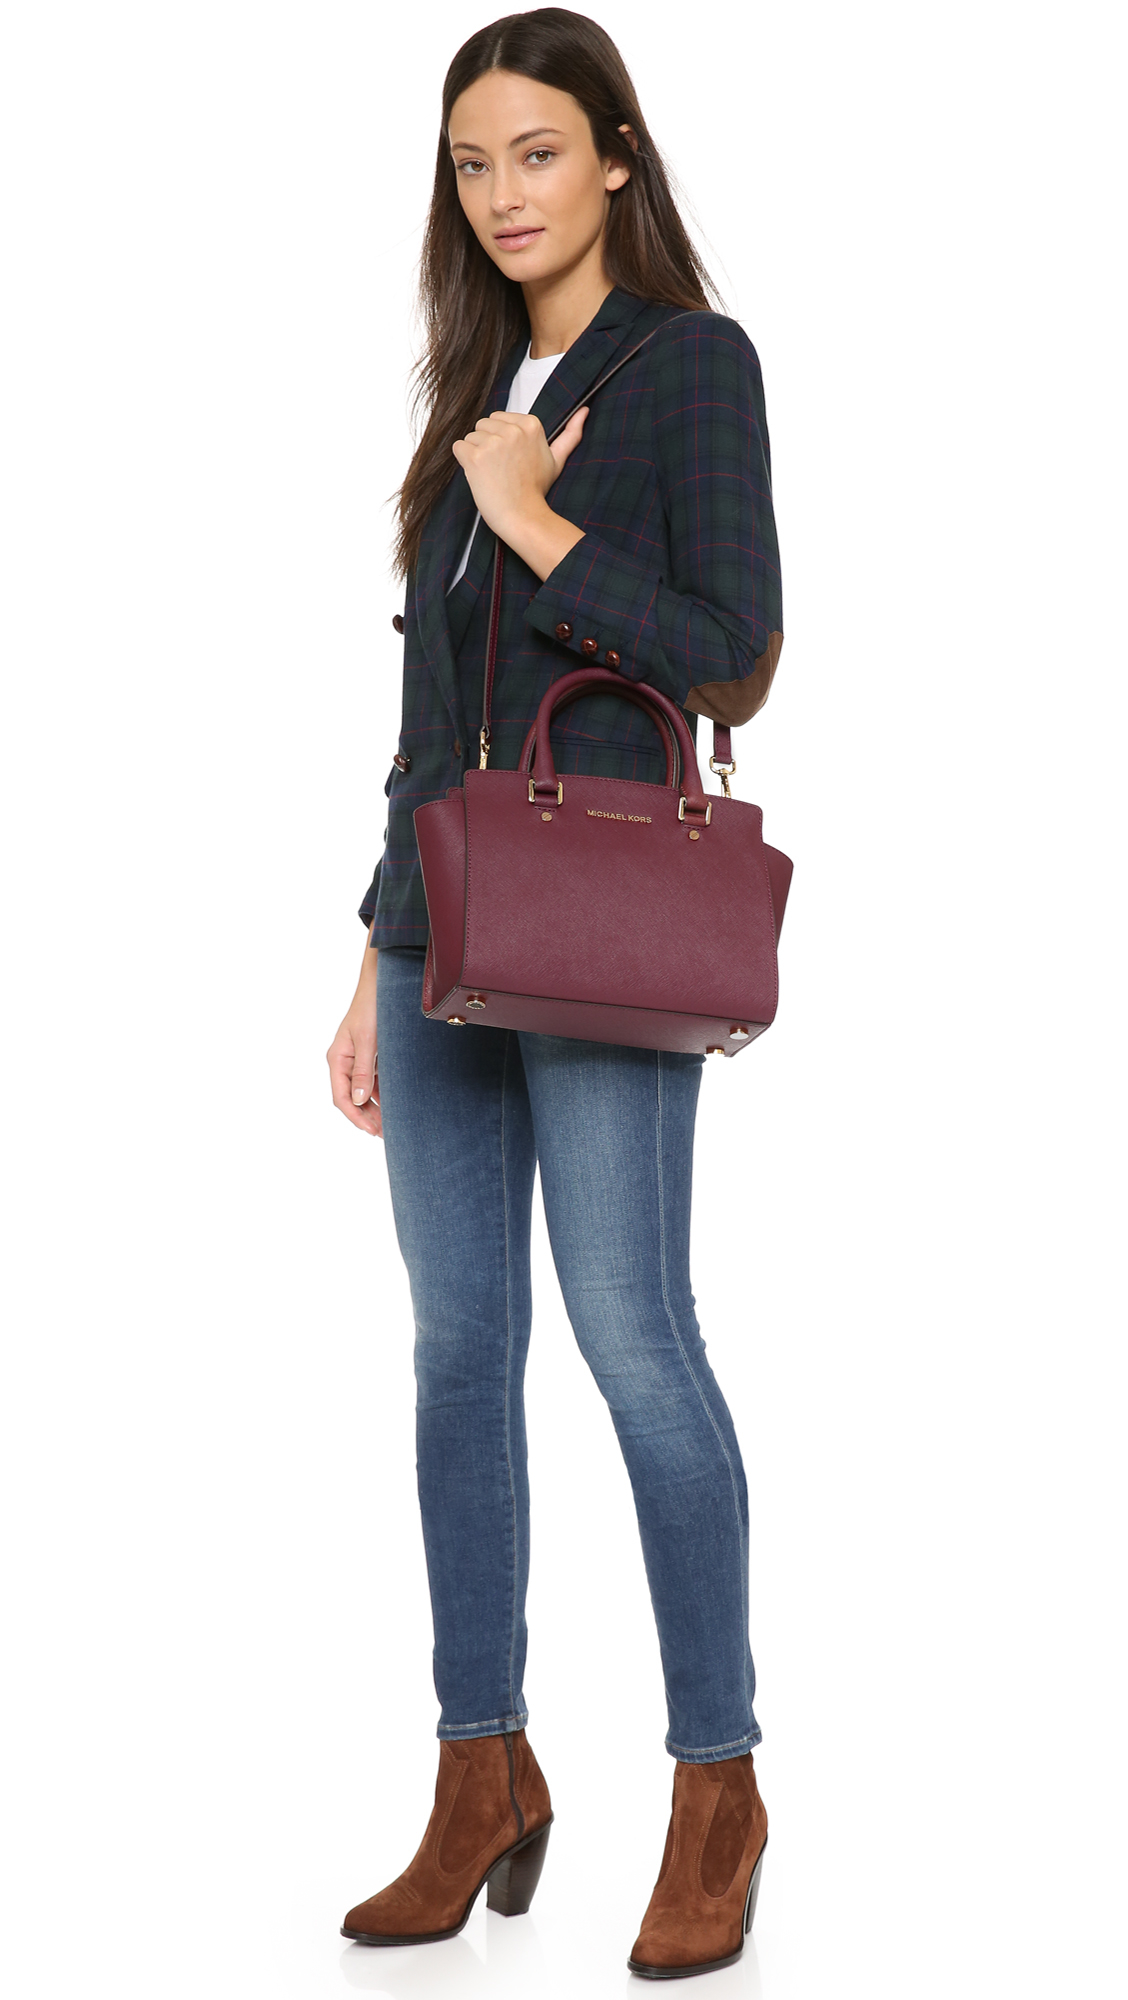 480711d745d7 Gallery. Previously sold at: Shopbop · Women's Michael By Michael Kors Selma  ...